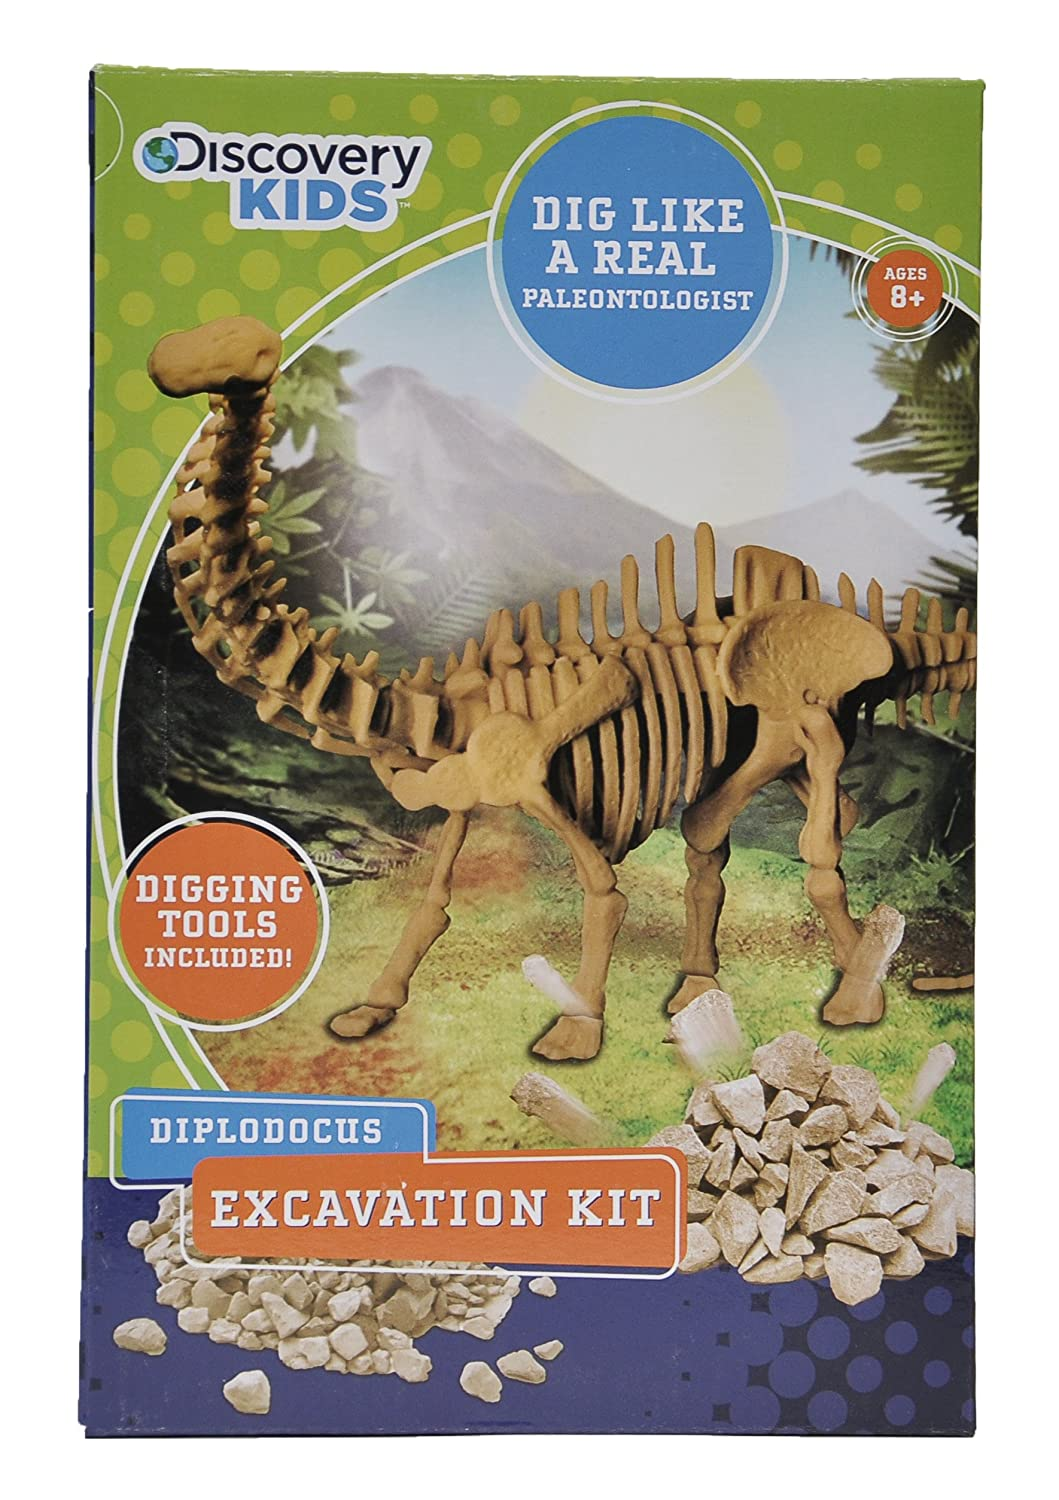 Discovery Kids Dinosaur Excavation Kit - Diplodocus